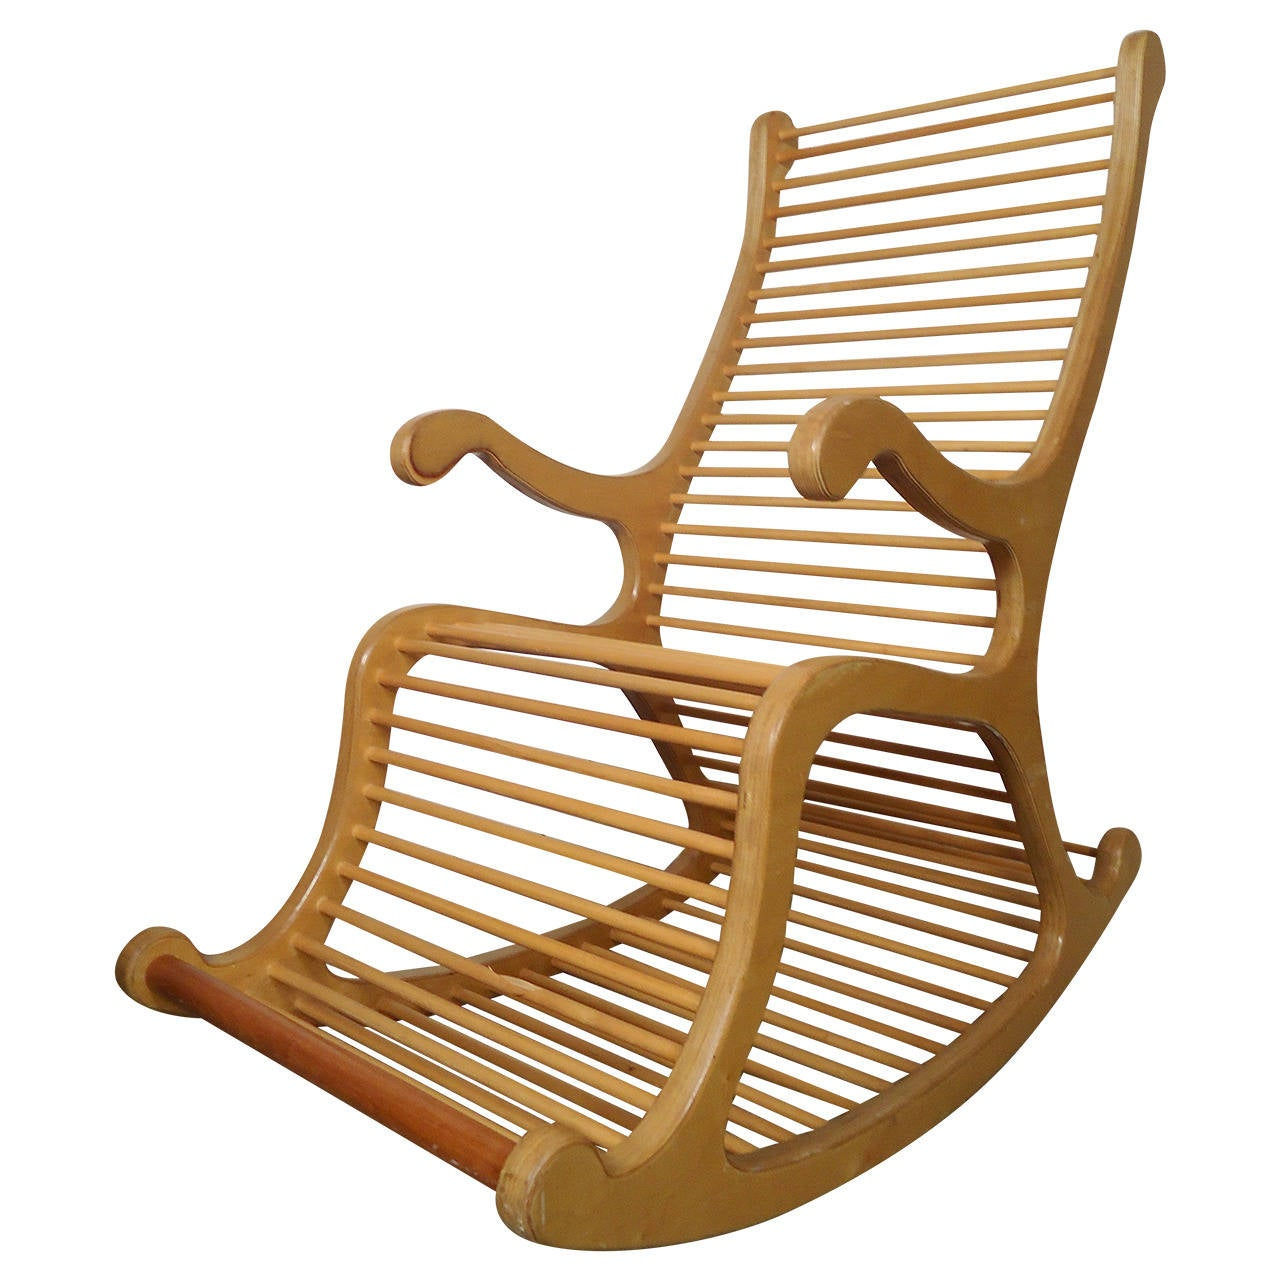 exceptional wood rocking chair for sale at 1stdibs. Black Bedroom Furniture Sets. Home Design Ideas